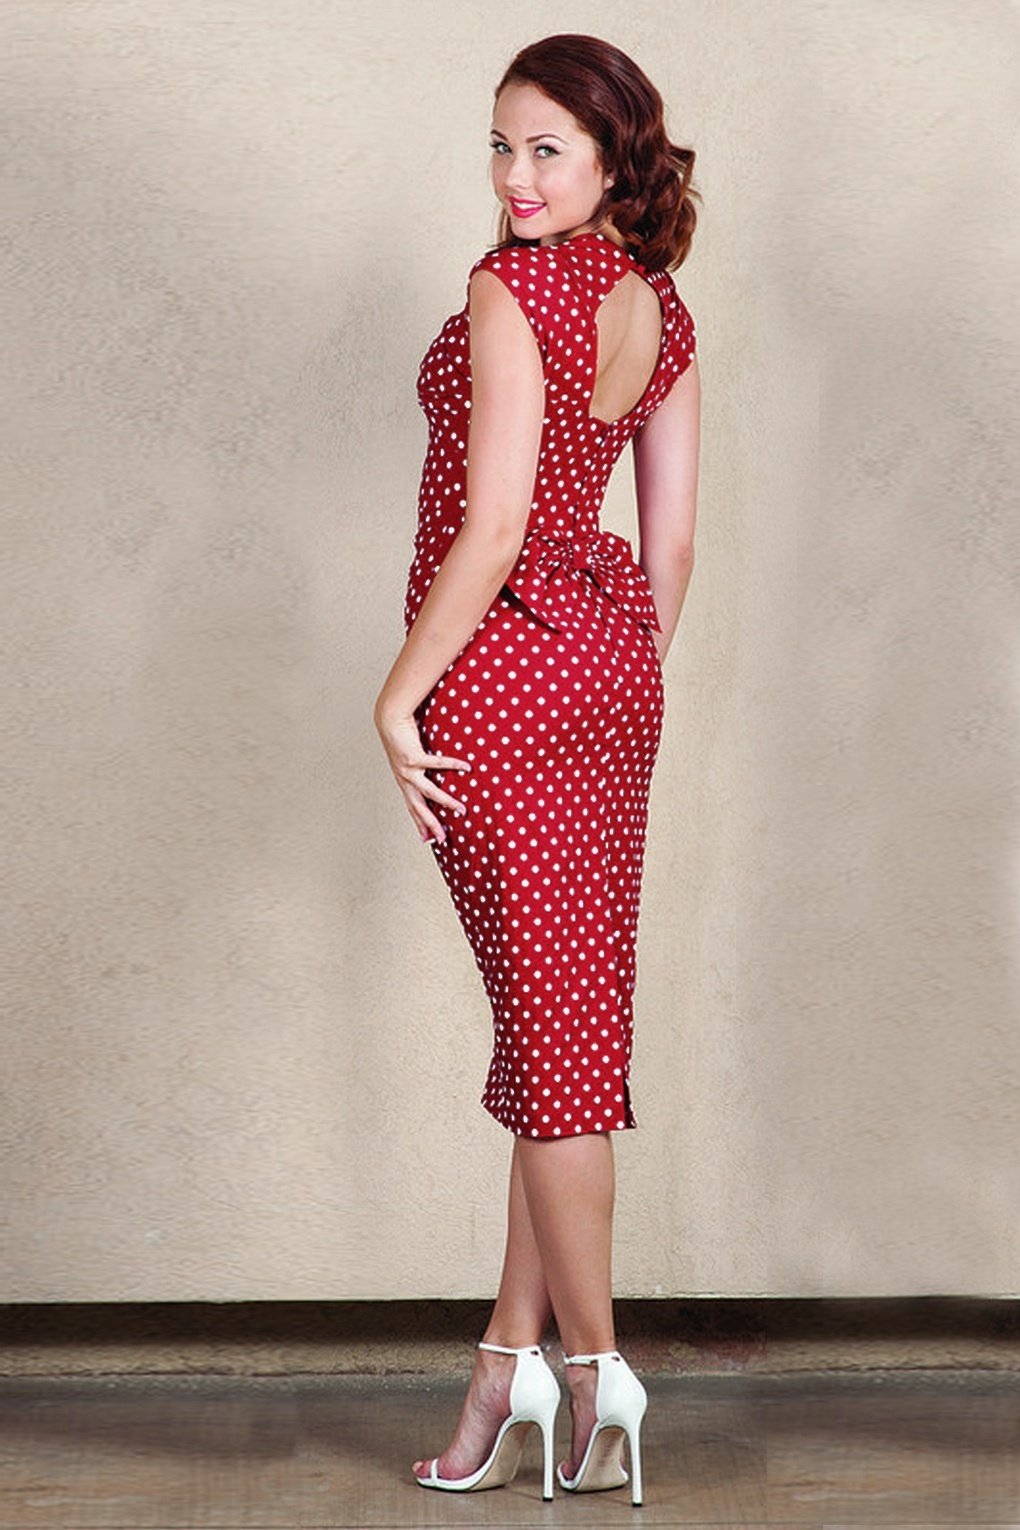 1950s Dresses, 50s Dresses | 1950s Style Dresses Love Polkadot print Bow Pencil Dress Red £194.06 AT vintagedancer.com